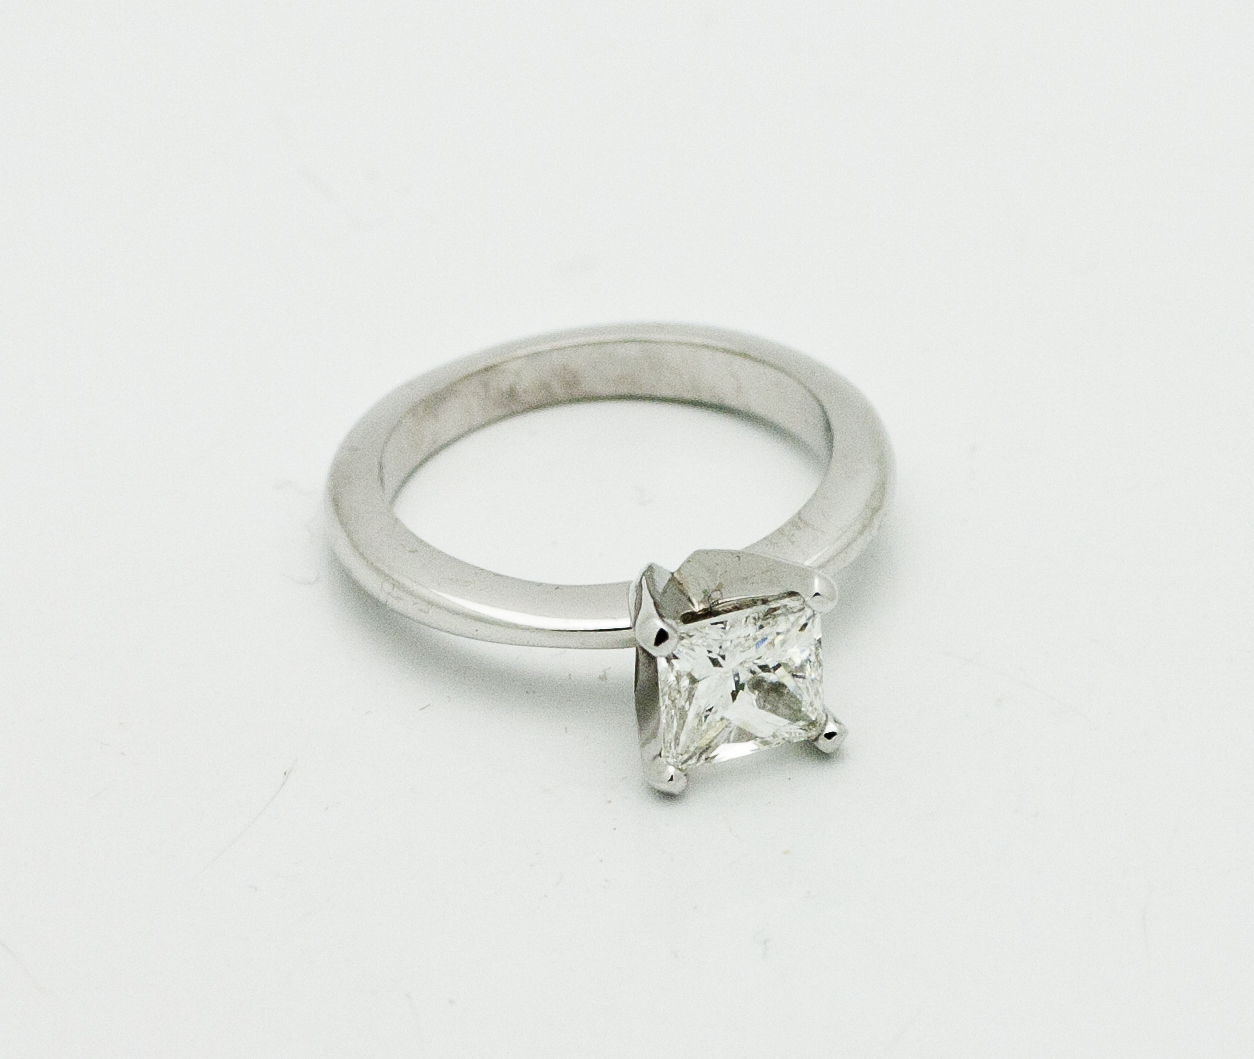 0.85ct princess cut diamond center stone in, 18kt white gold diamond solitaire ring.  Starting at $4500 for this stone size and quality  Can be customizable with any stone, size, metal etc.